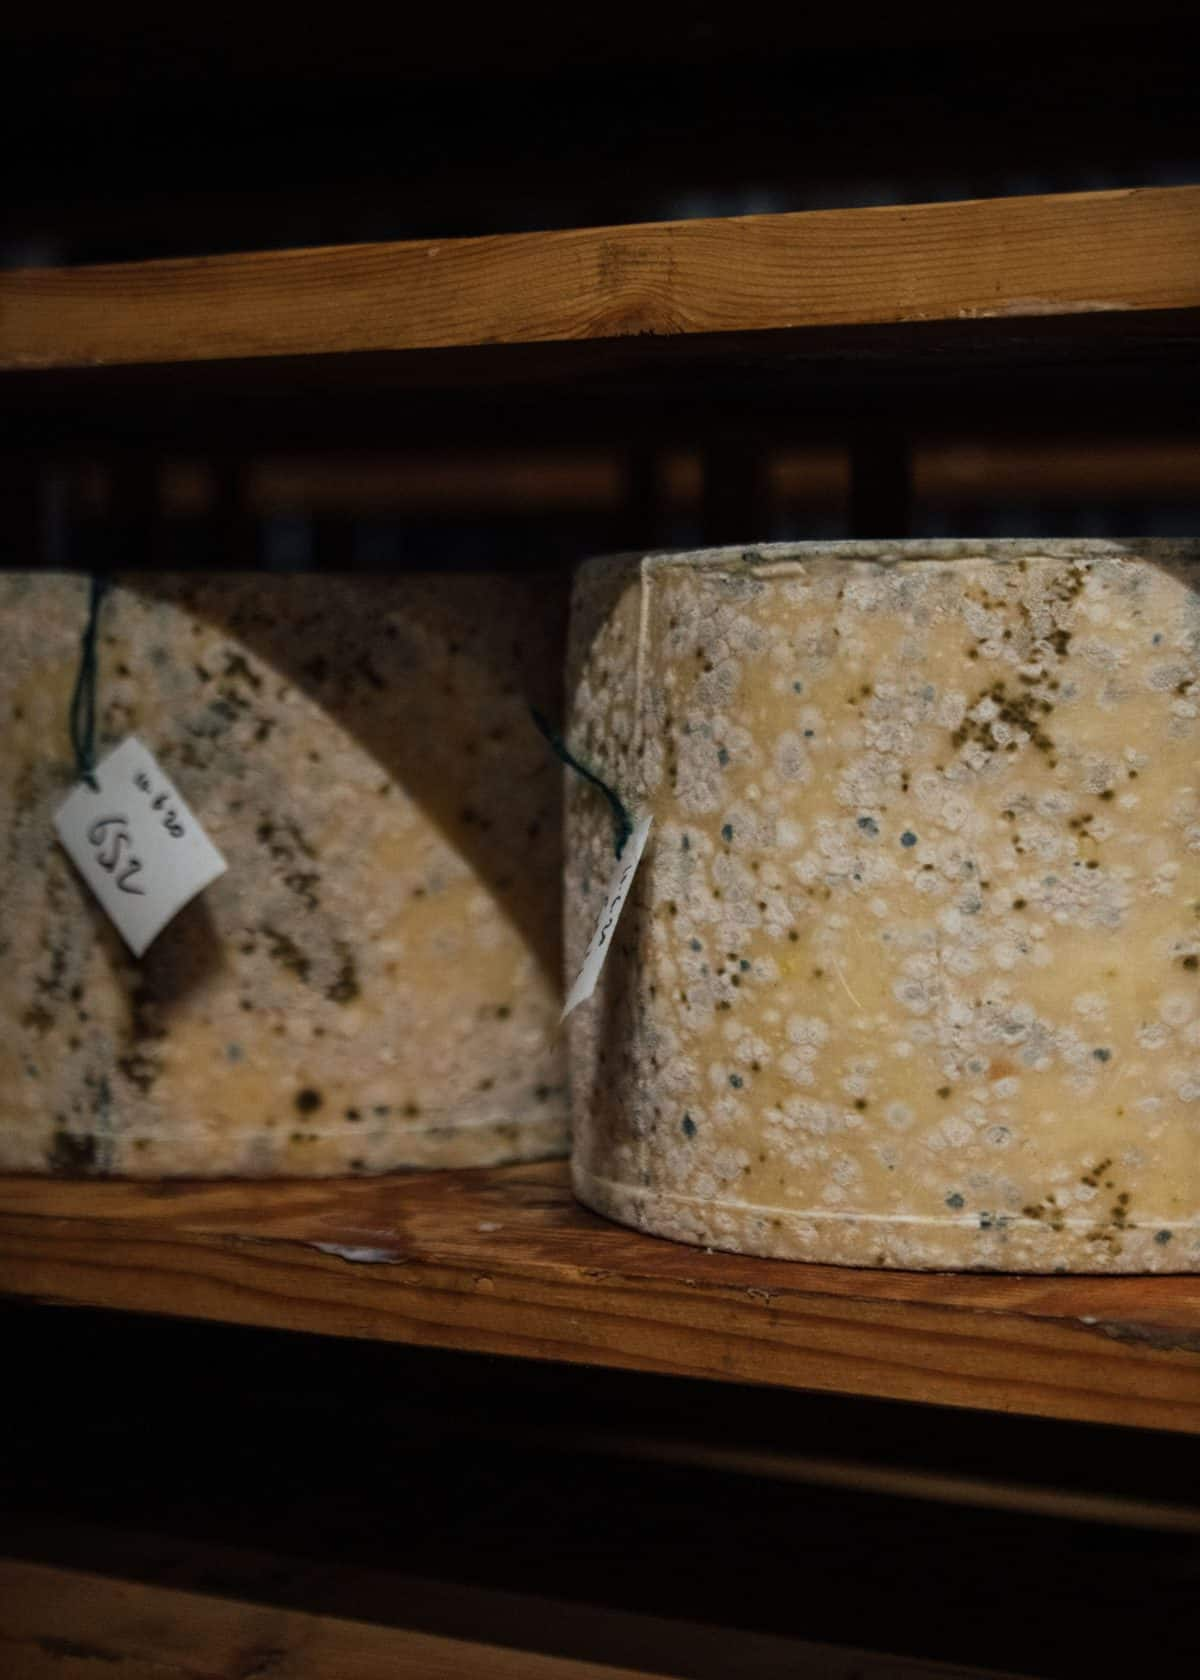 Cheese growing mold